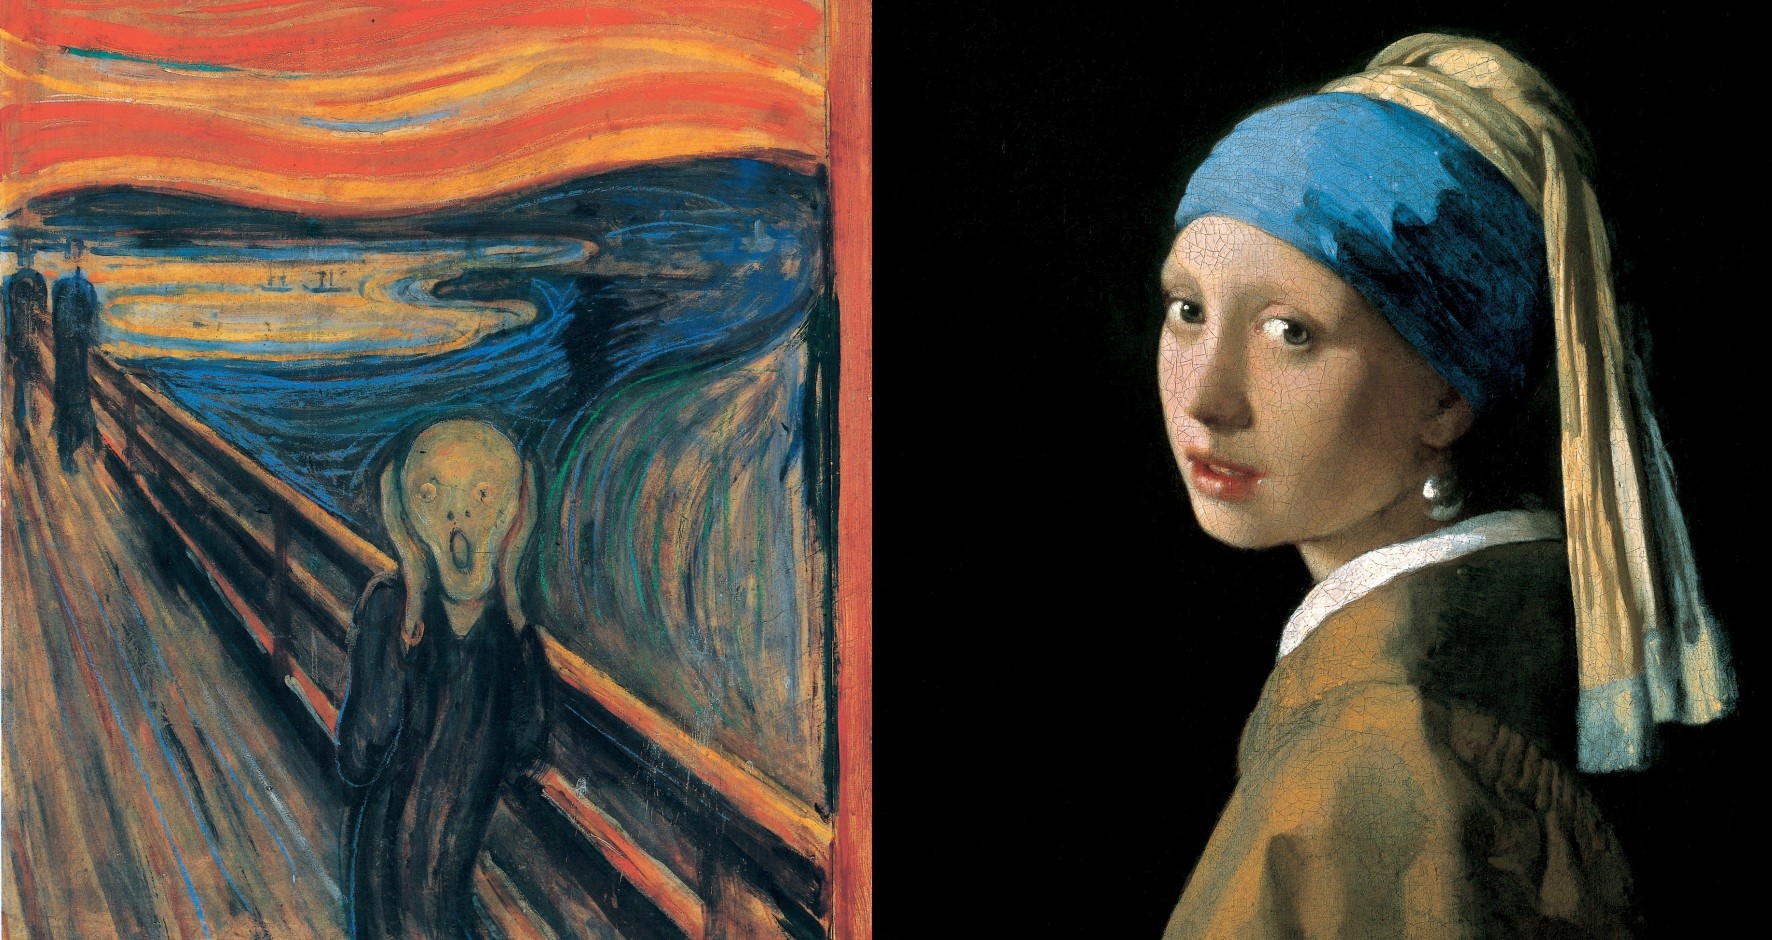 how art changed the world As director of digital learning, i might just have the best job in the world take today as an example at 10:00 am, i reviewed video for an online studio course about the materials and techniques of willem de kooning, jackson pollock, and barnett newman (among others) that my coworker amy.